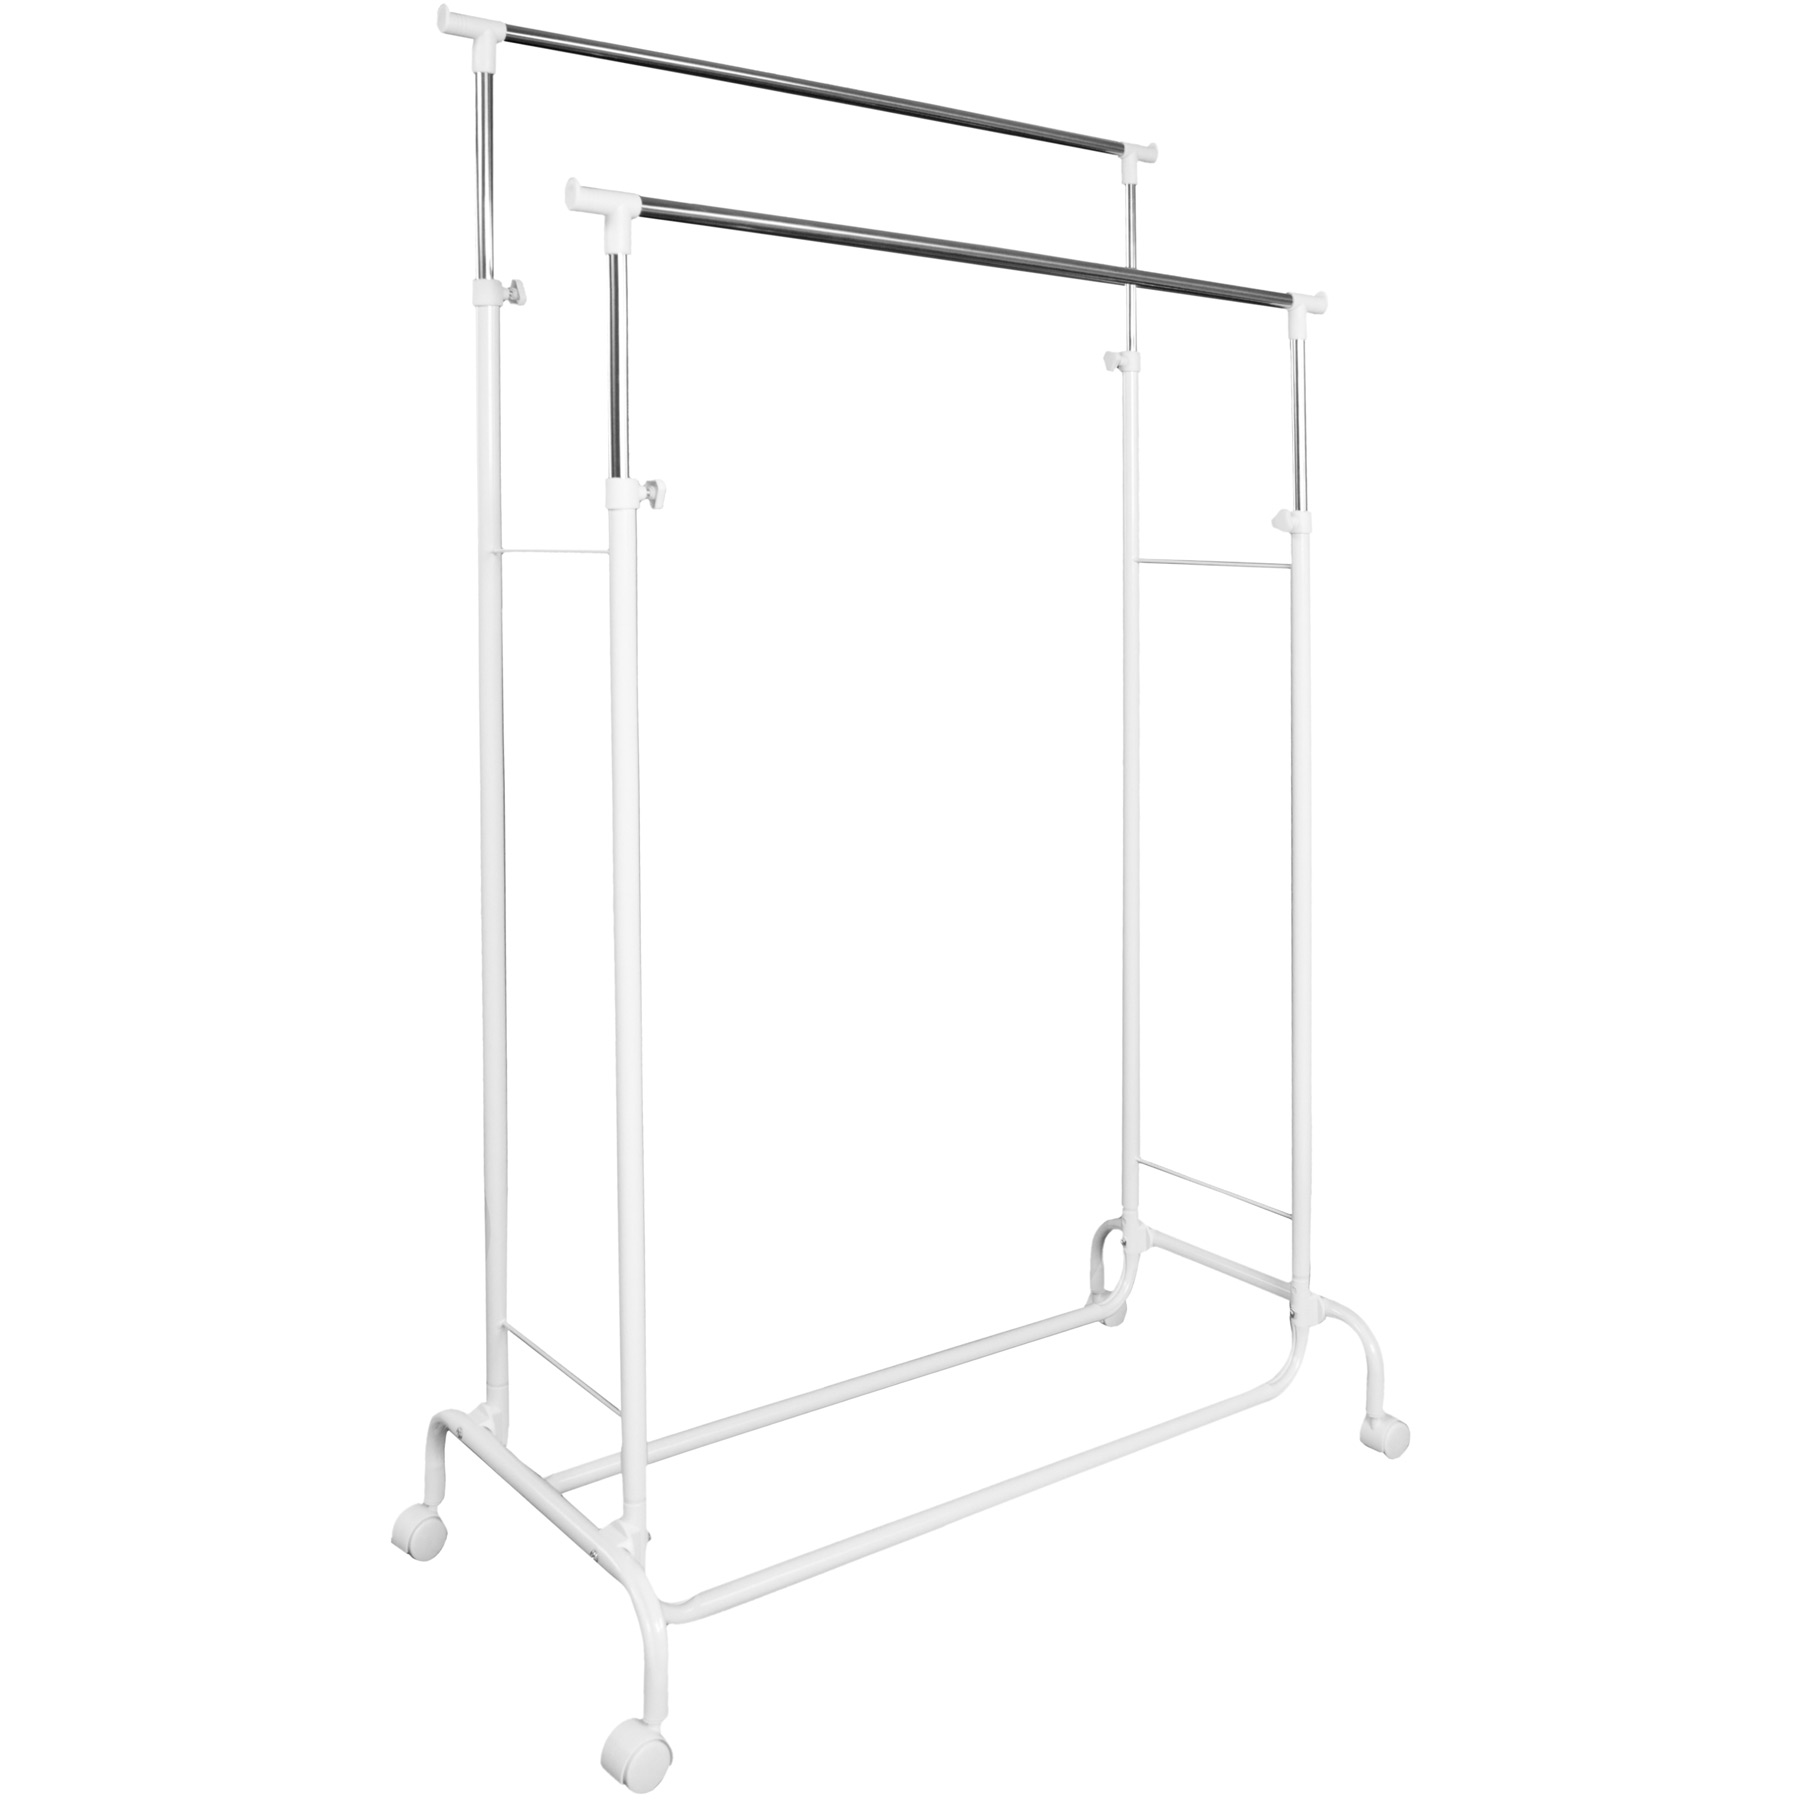 Clothes Rack Mobile Garment Rail Double Hanging Ebay